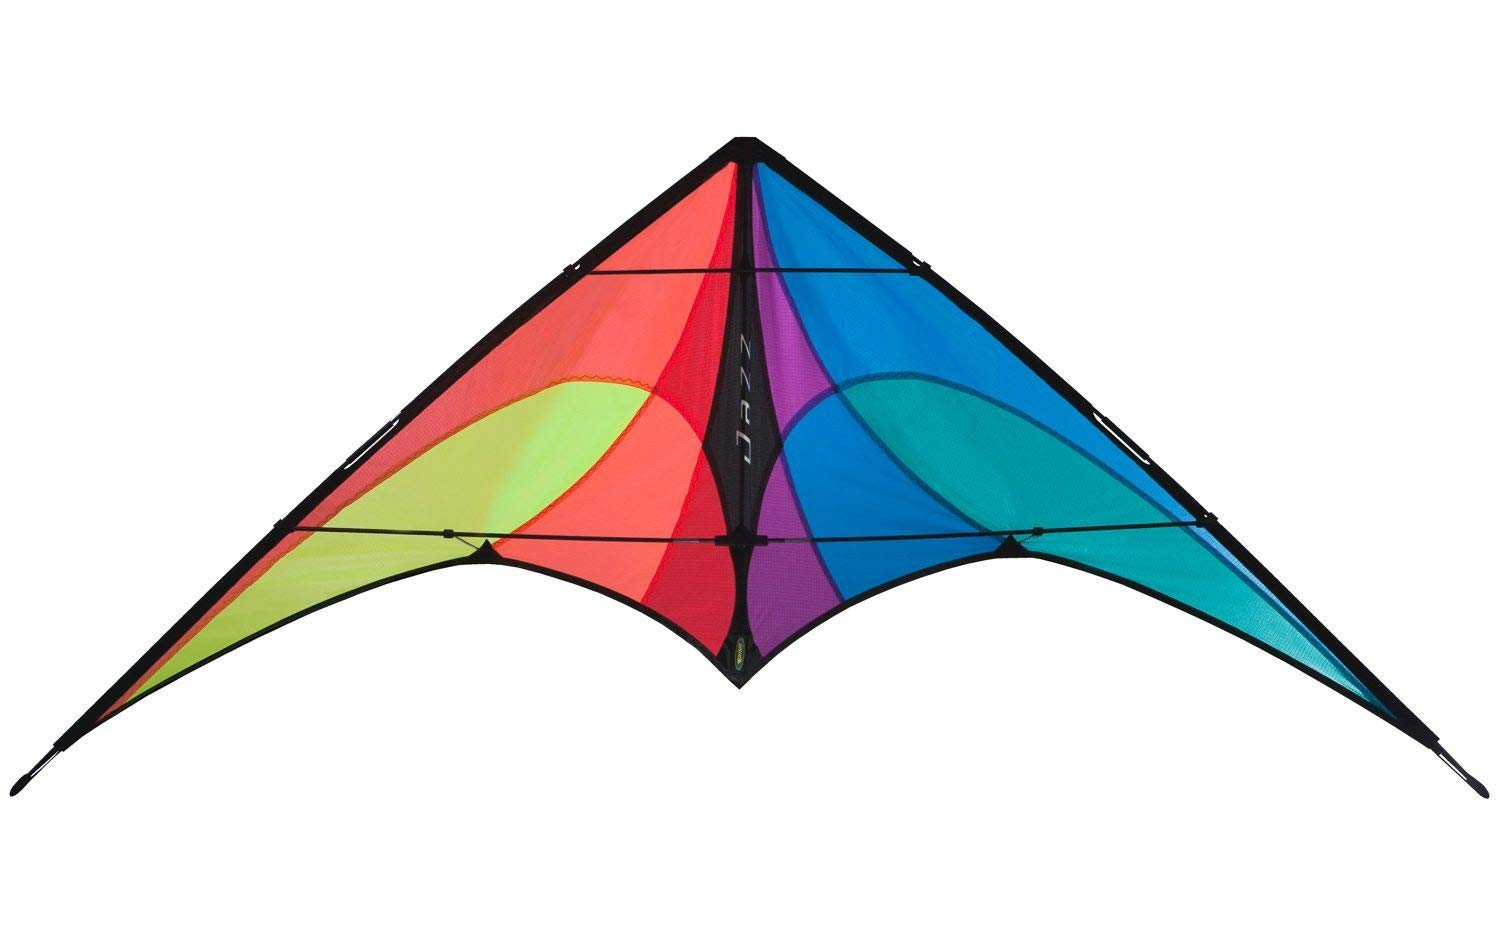 Prism Jazz Dual Line Delta Framed Stunt Kite with 40' Tail Bundle (3 Items) + Prism 40ft Nylon Ripstop Streamer Tail + WindBone Kiteboarding Lifestyle Stickers + Key Fob (Spectrum)